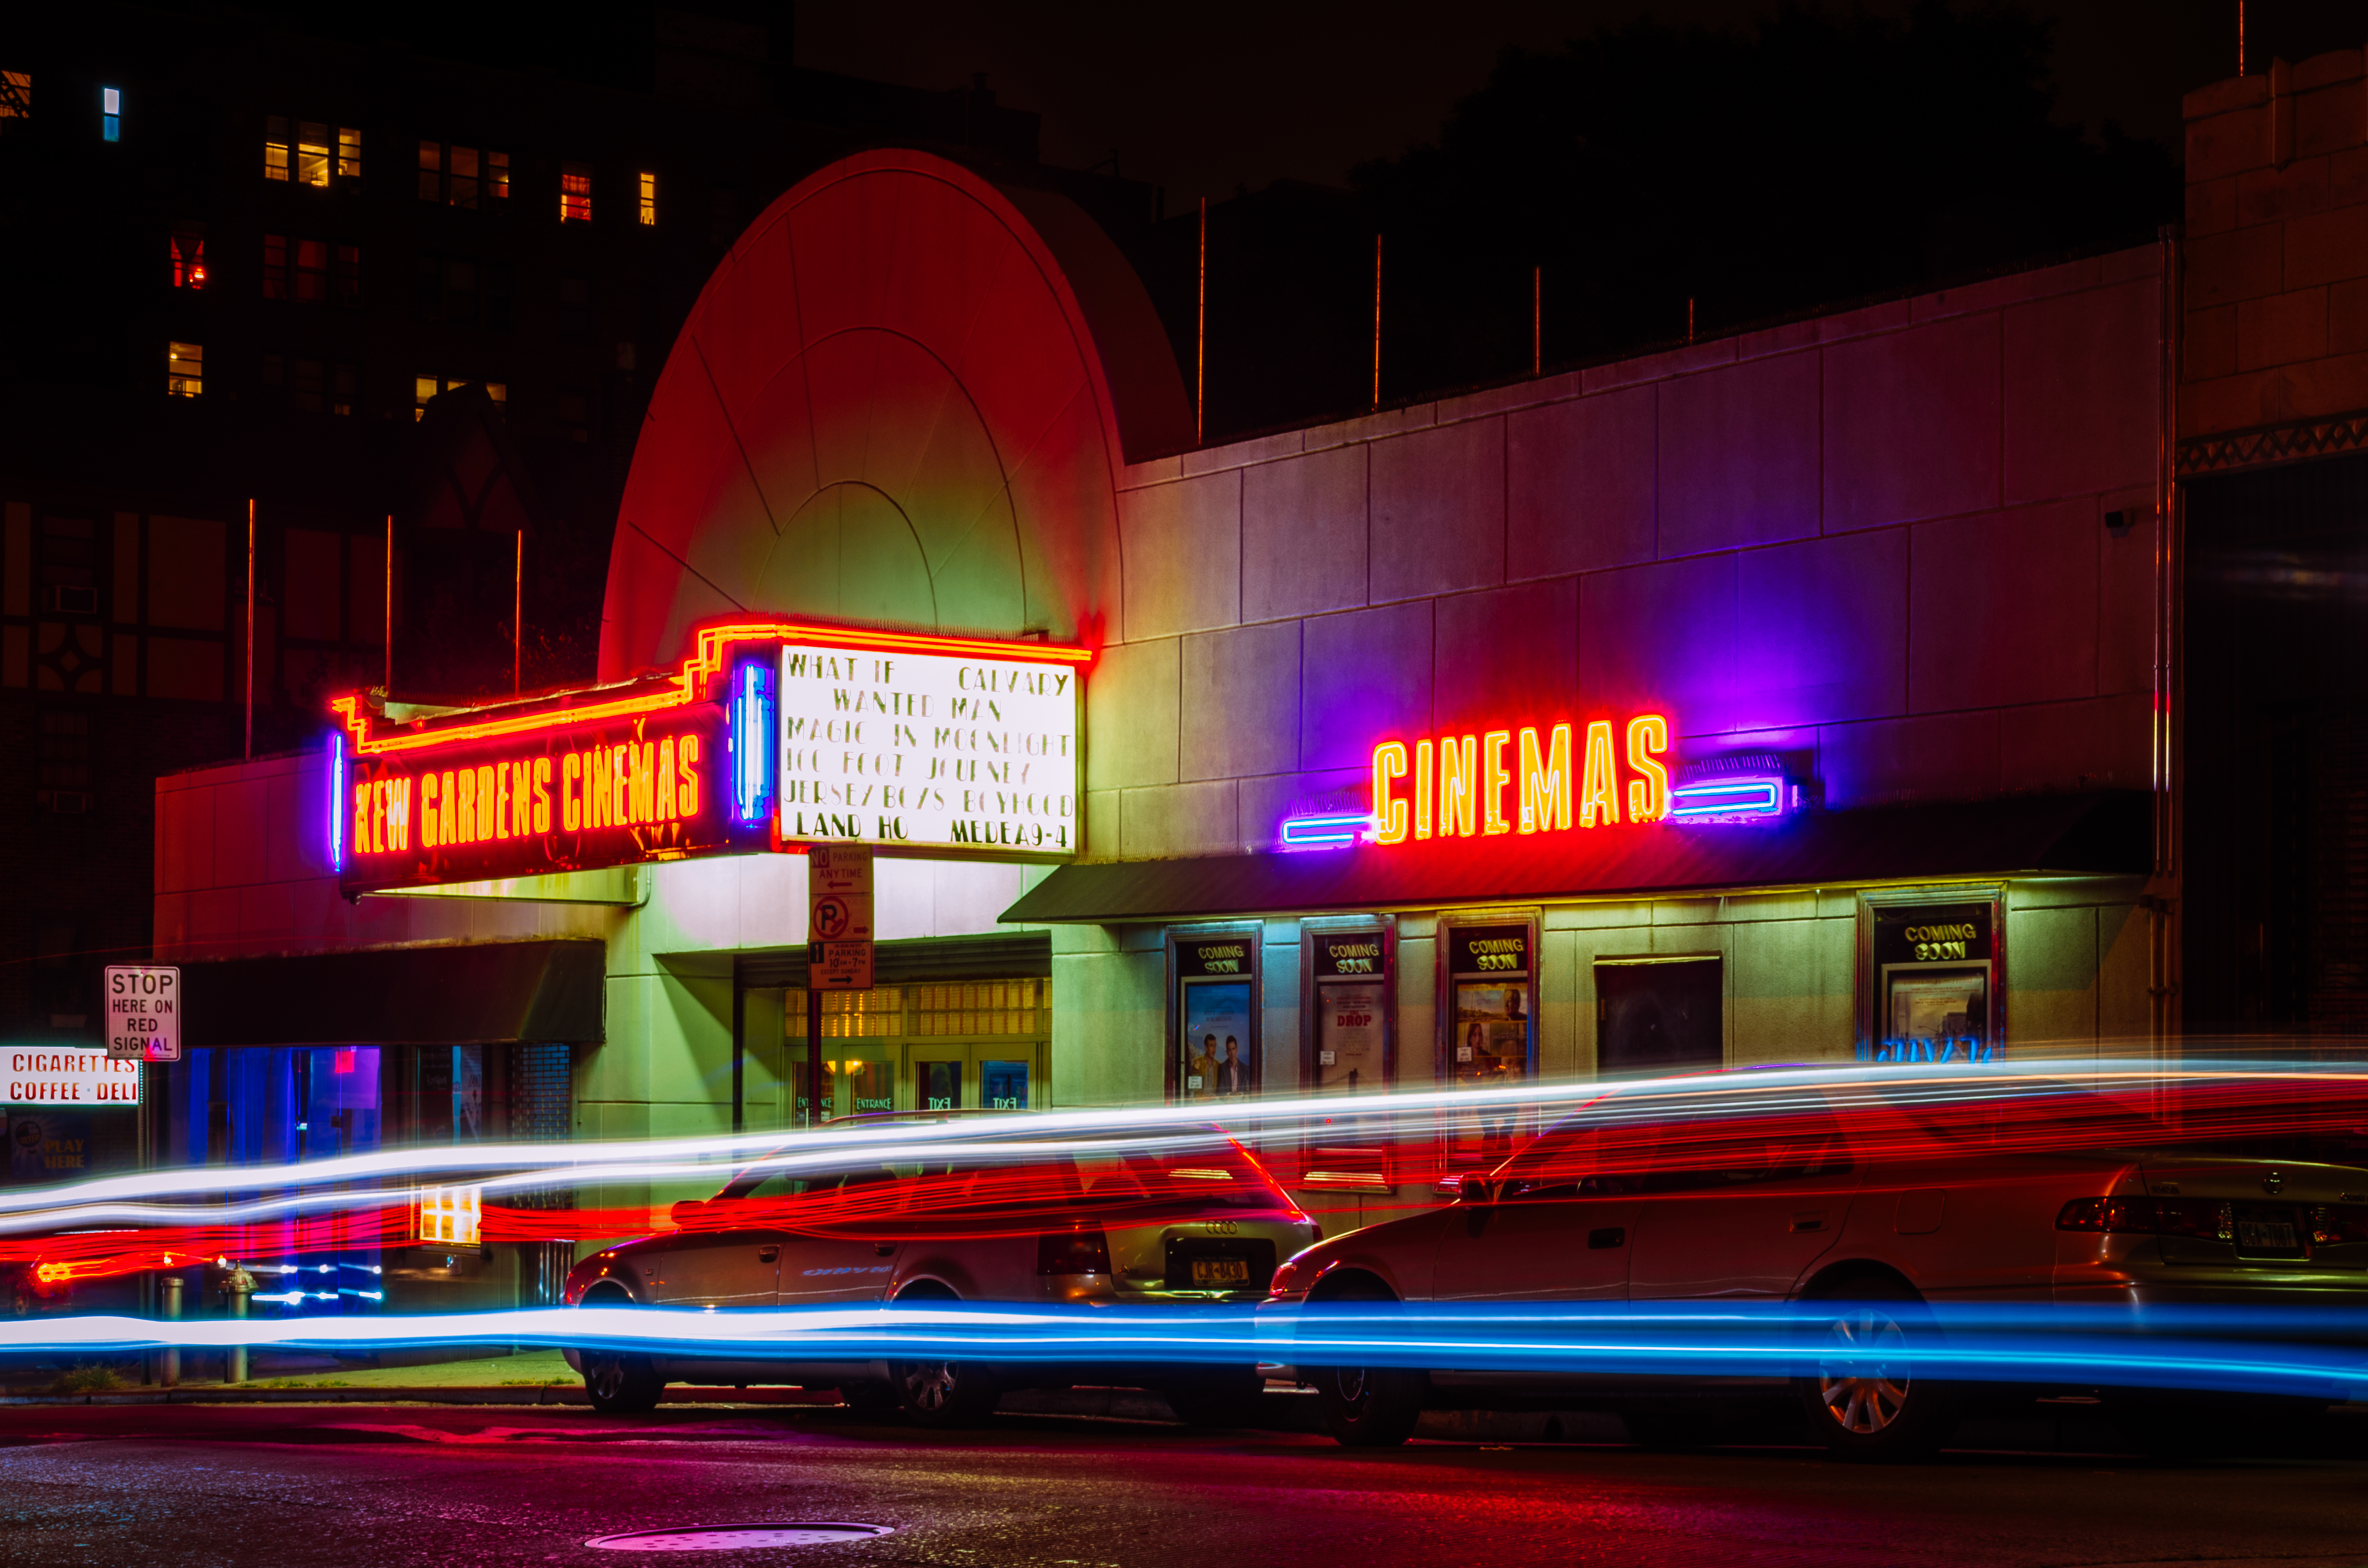 Time-lapse Photography of Car Lights in Front of Cinema